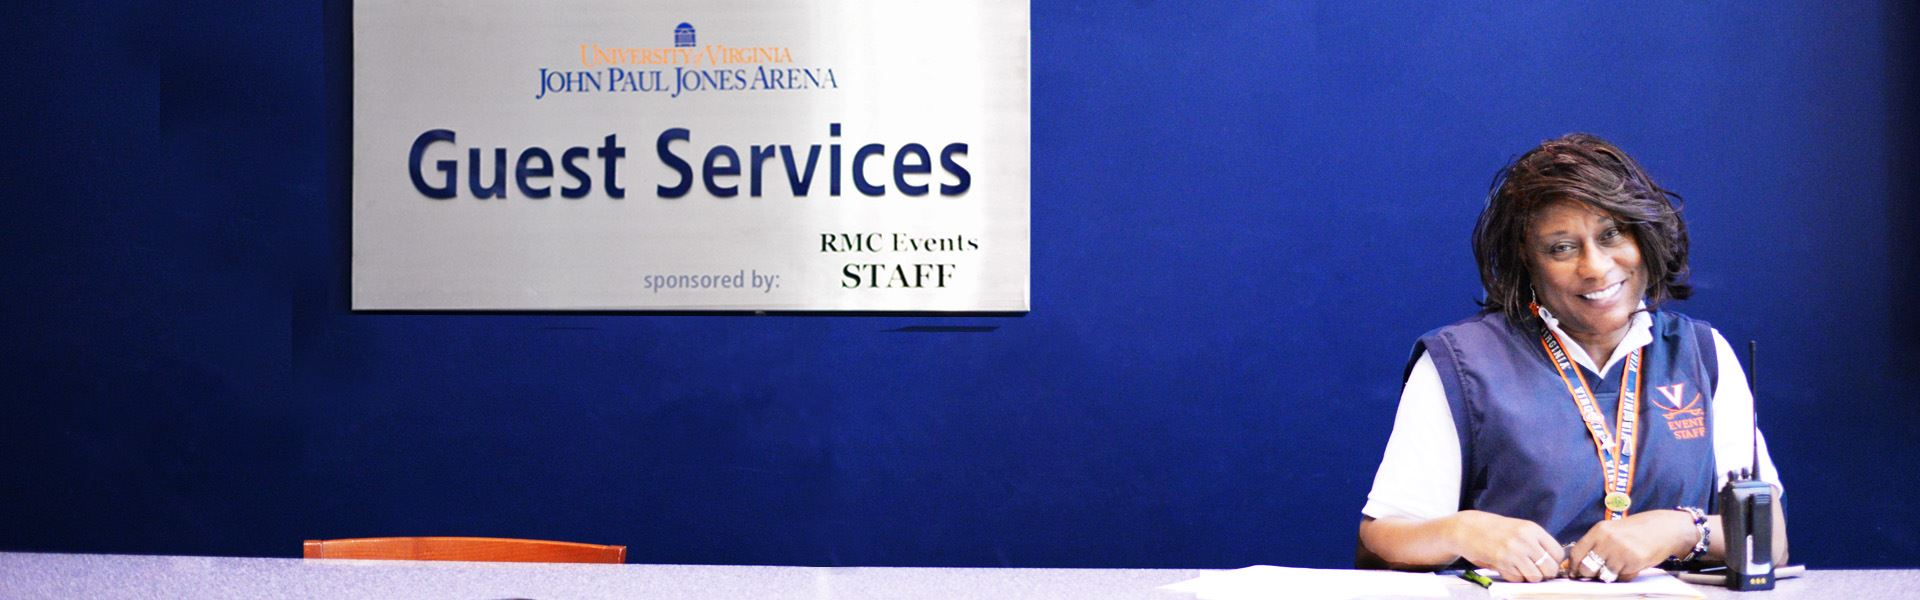 Guest Services Employee Smiling at JPJ Guest Services Desk